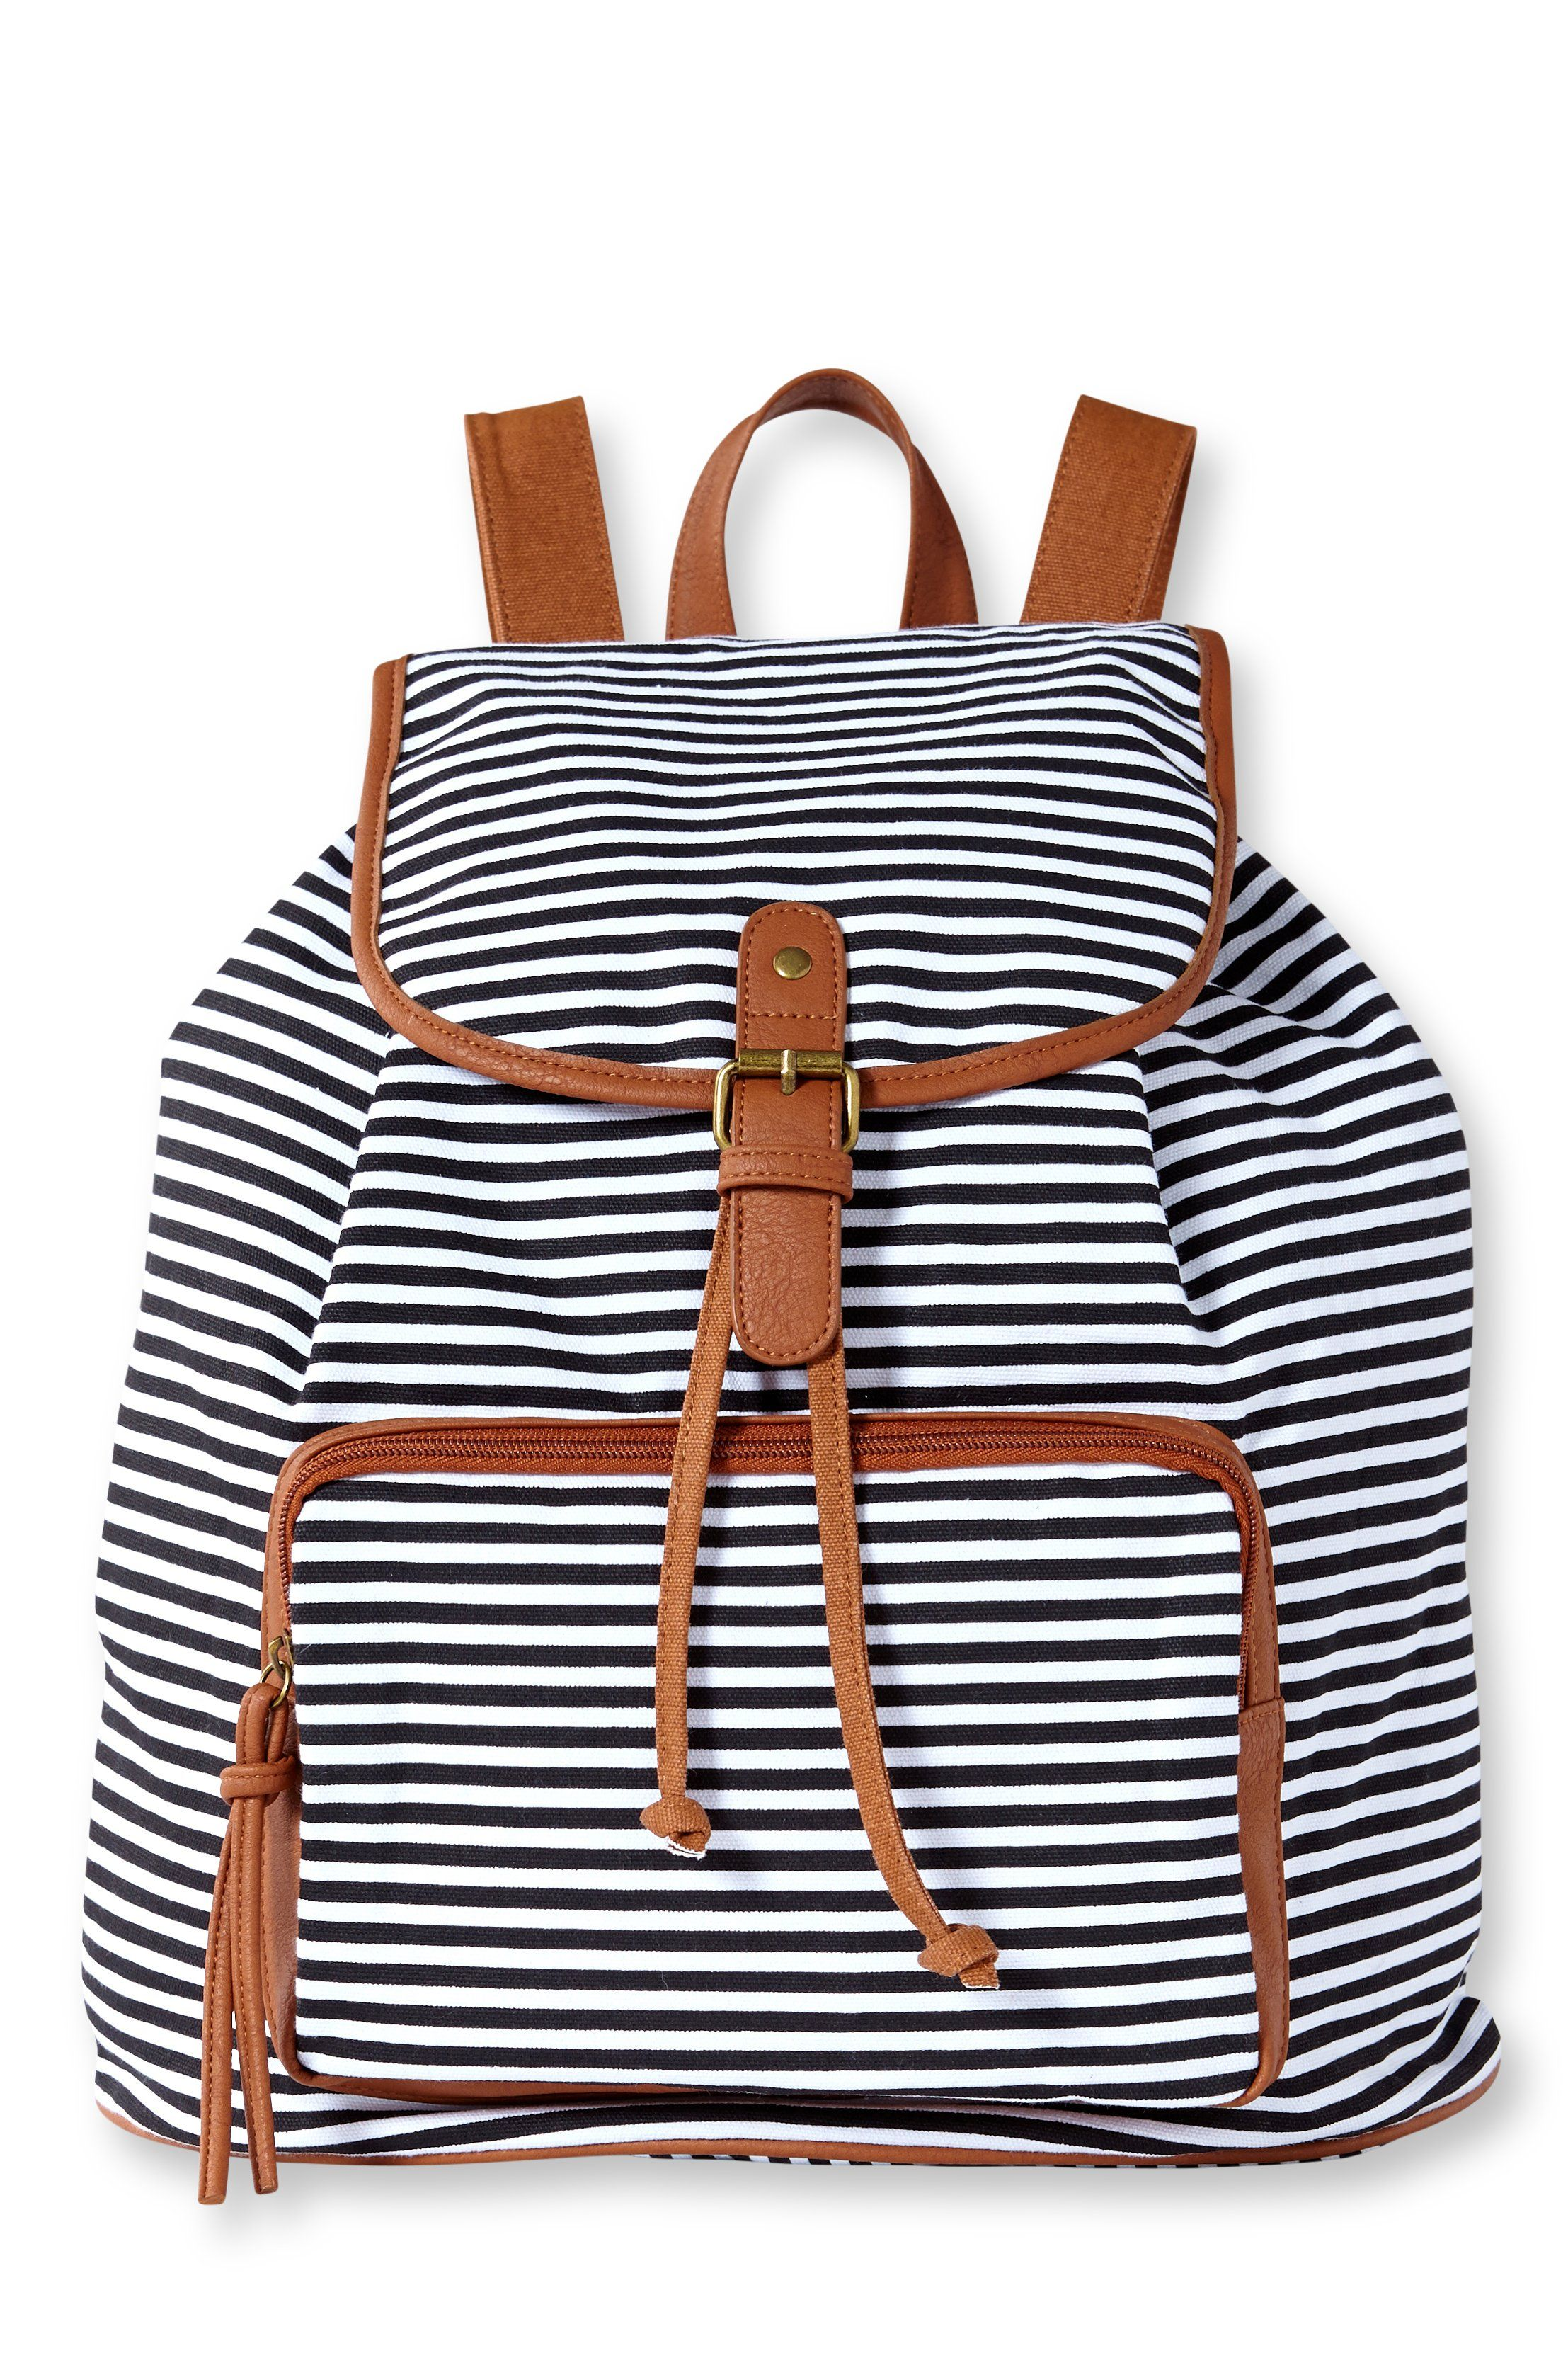 The 35 Coolest Back-to-School Backpacks | Coolest, Women's fashion ...